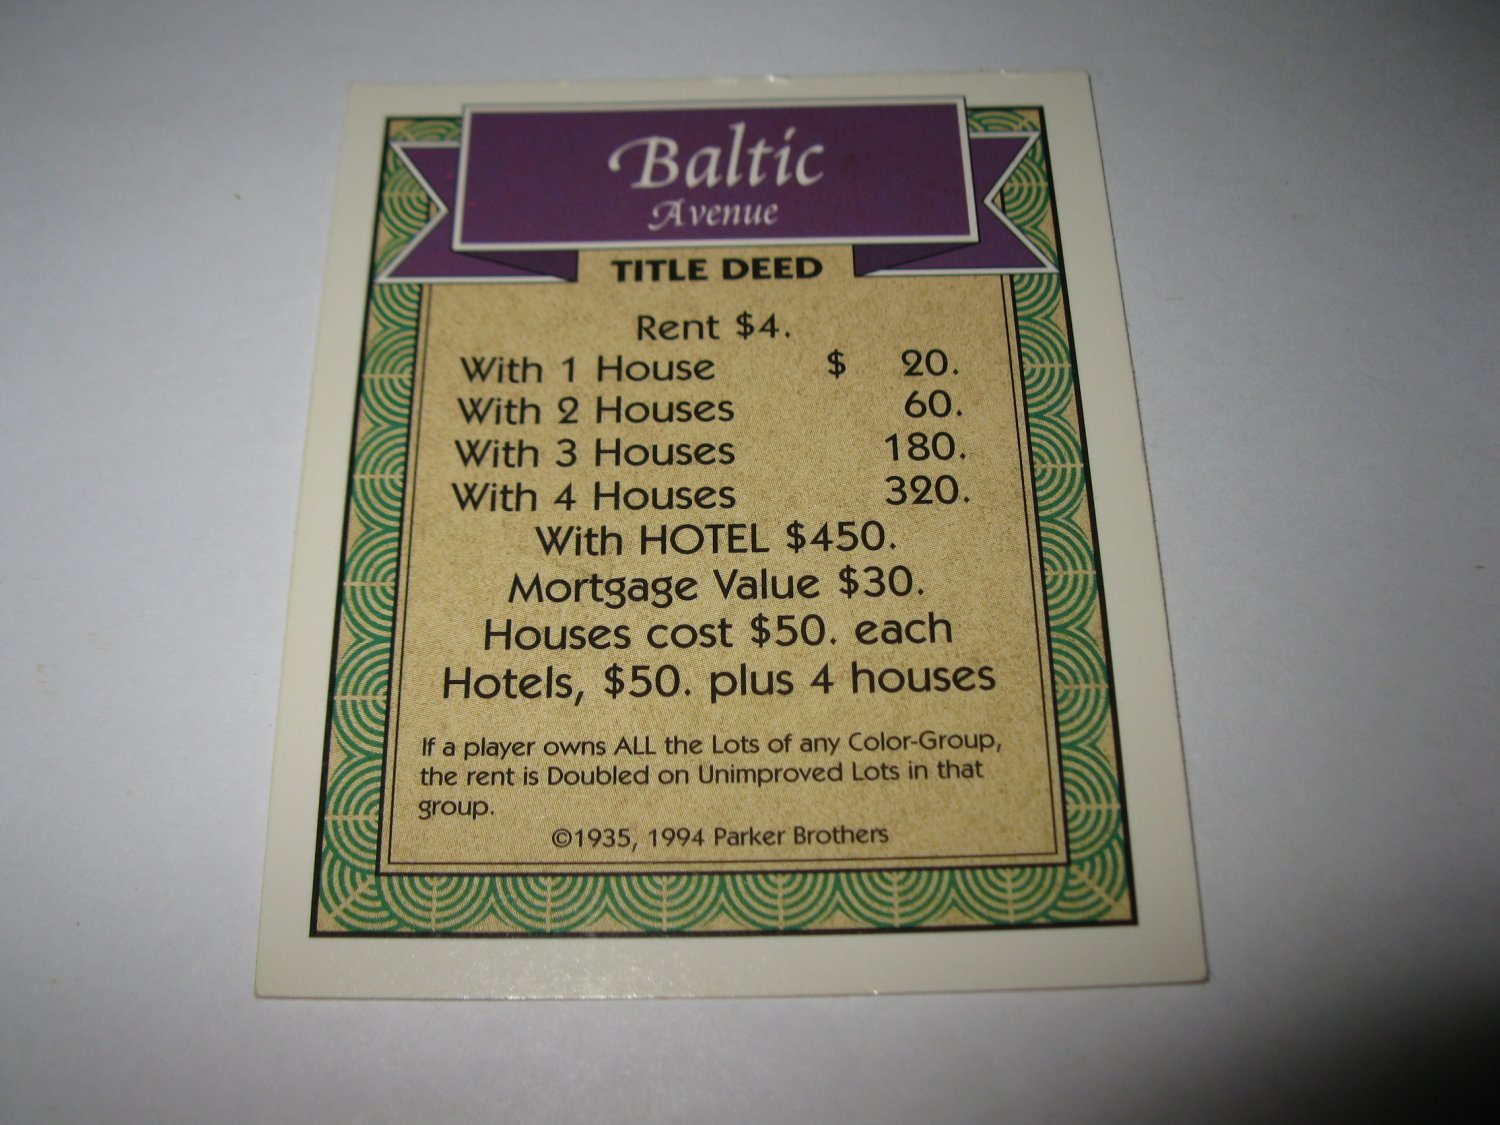 1995 Monopoly 60th Ann. Board Game Piece: Baltic Avenue Property Deed